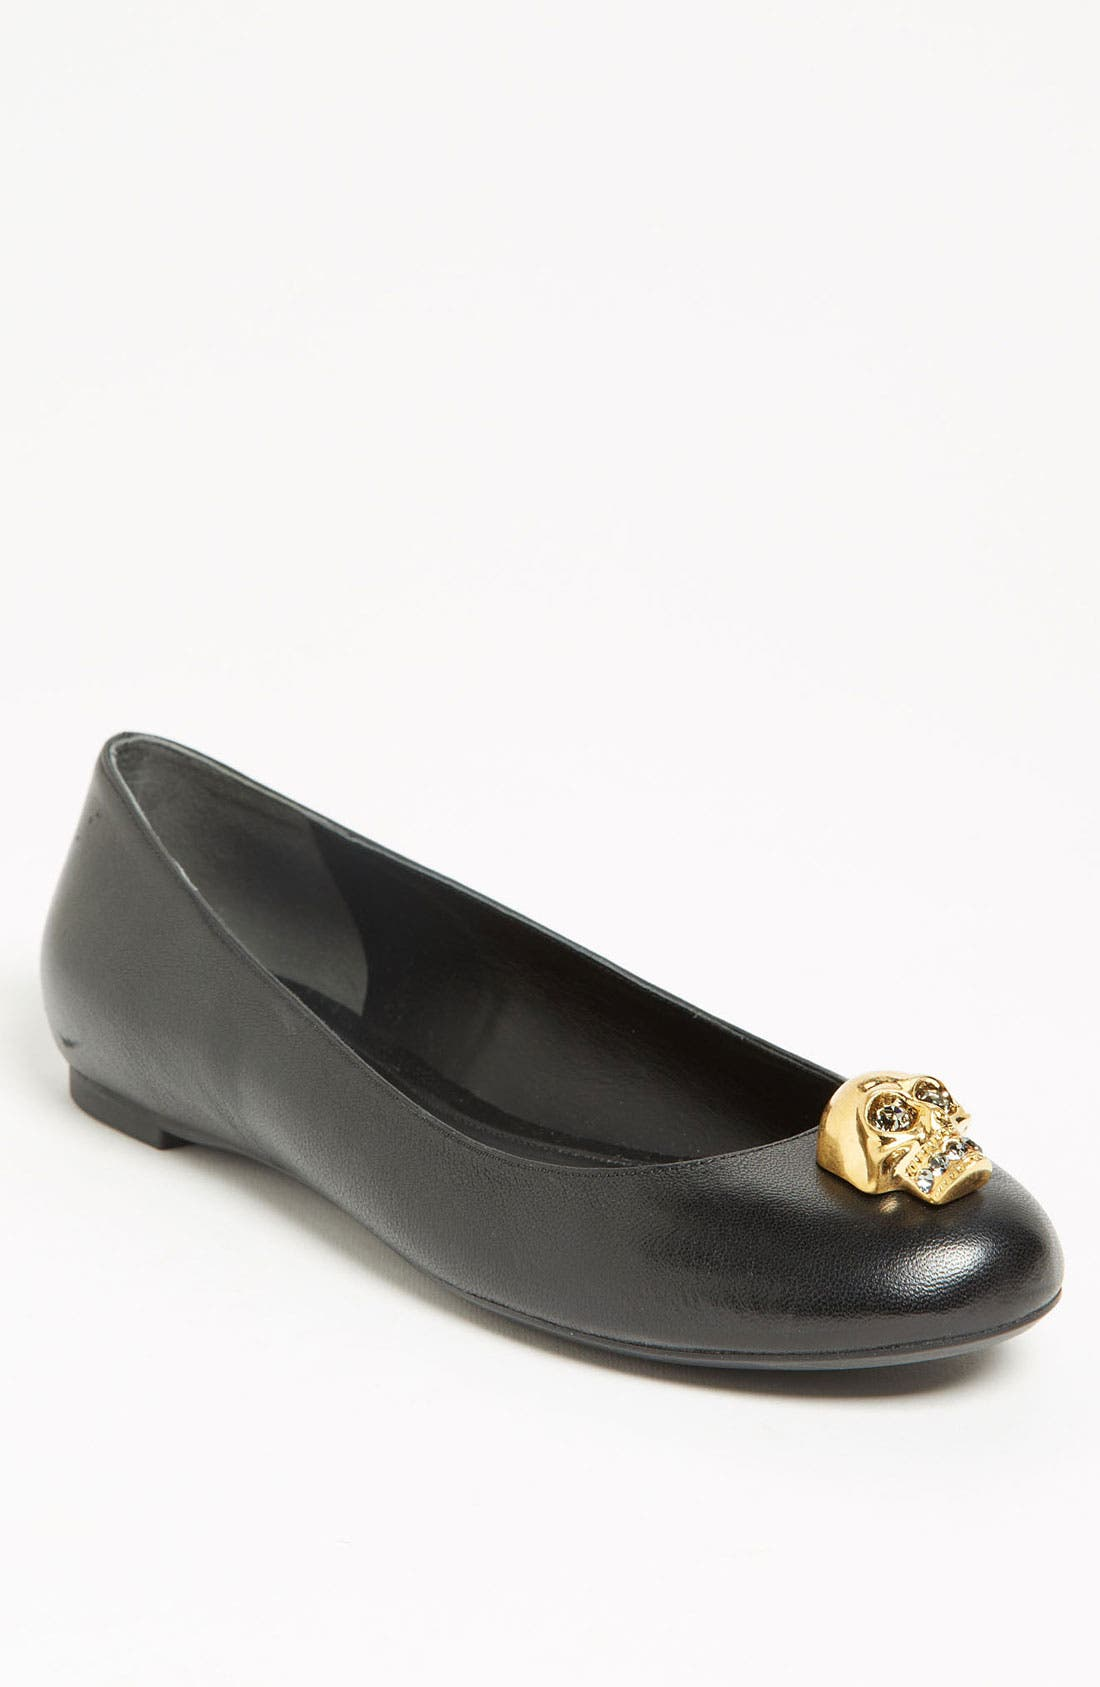 Alternate Image 1 Selected - Alexander McQueen Skull Ballet Flat